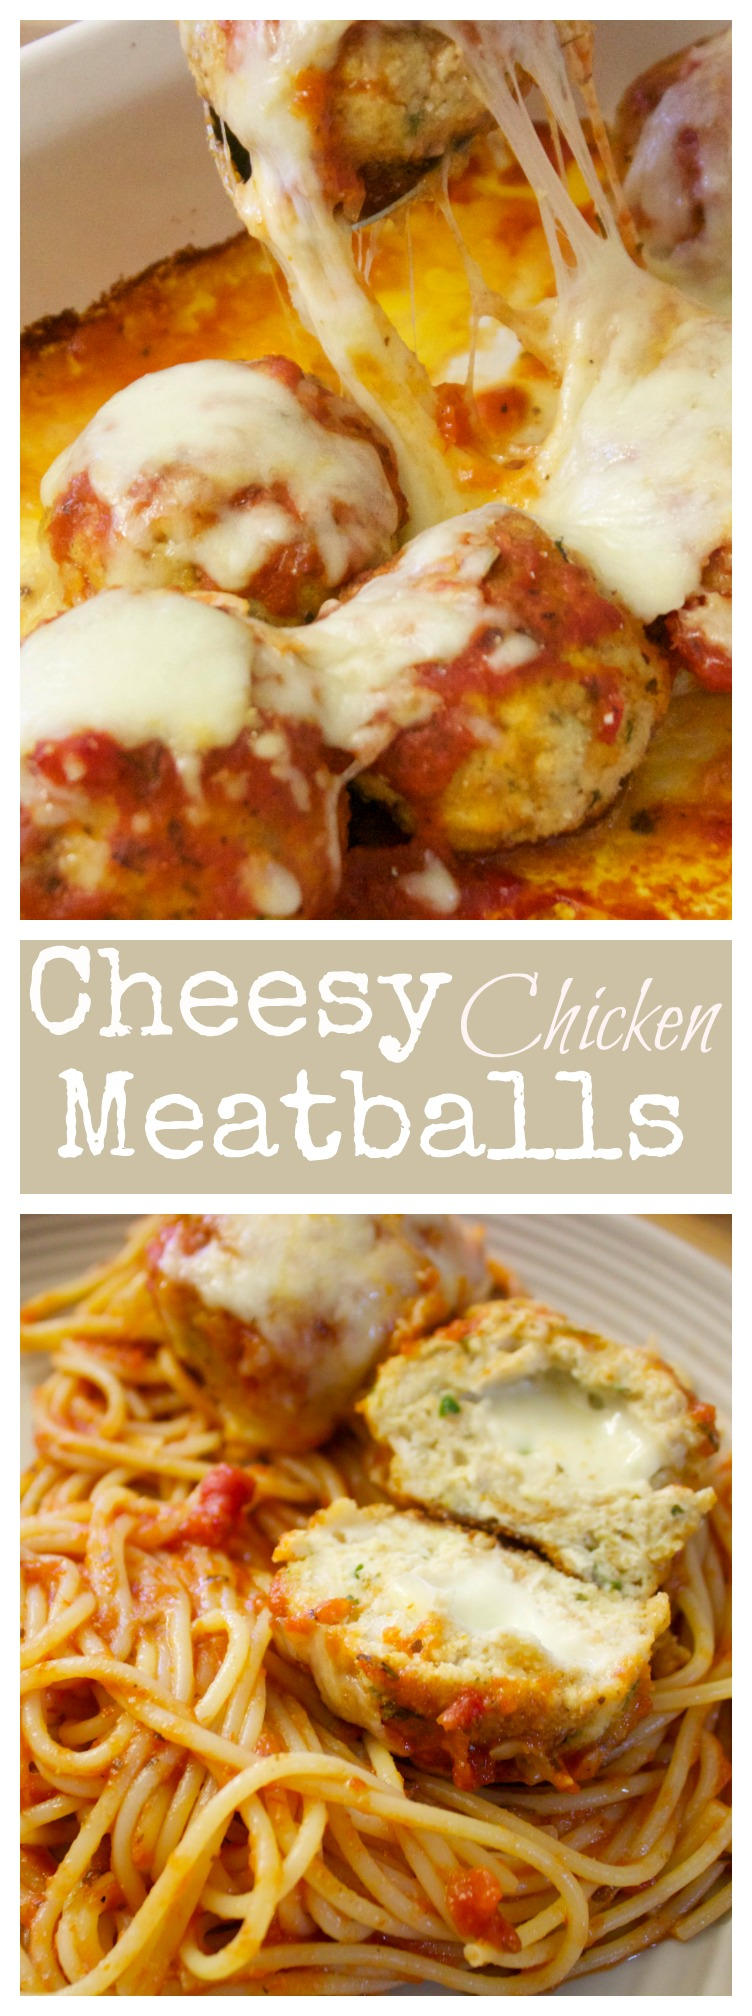 Cheesy Chicken Meatballs Recipe | Video and Recipe from Cooked by Julie